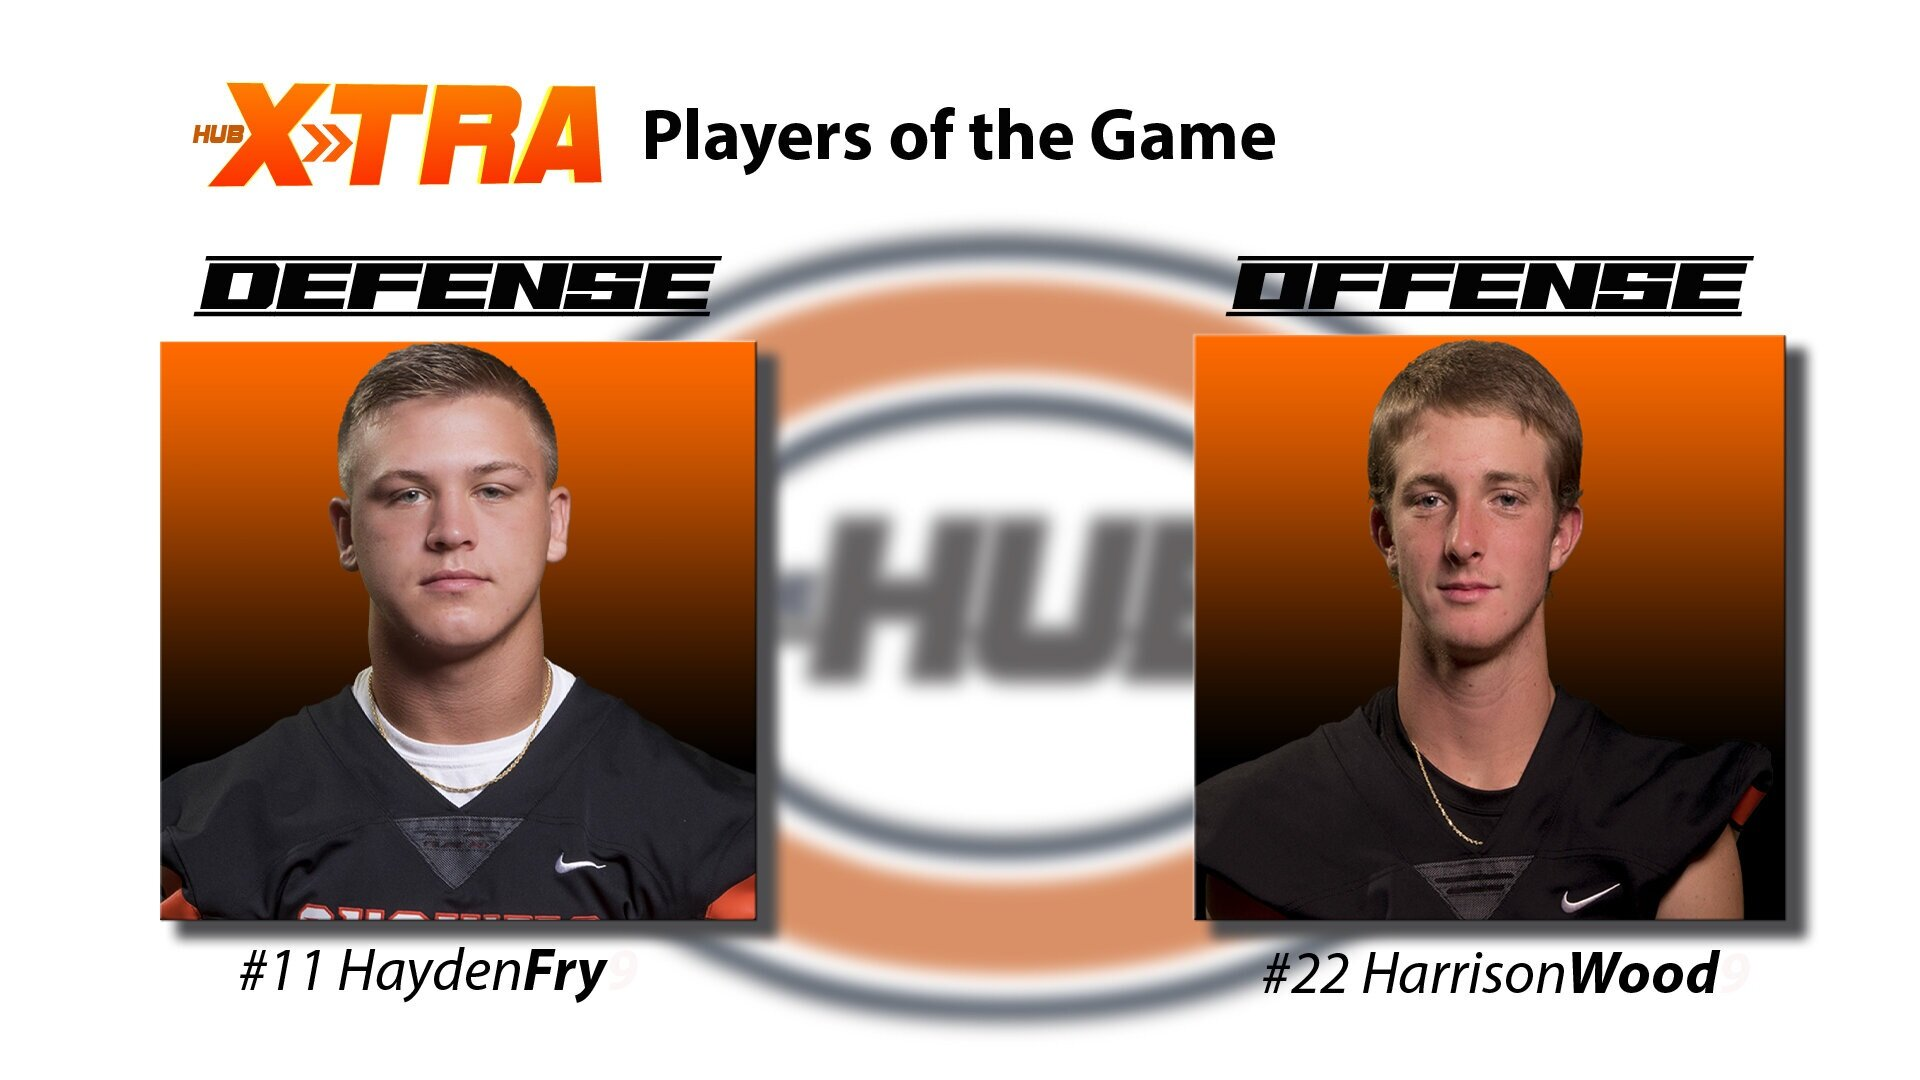 Wee 3 Defensive & Offensive TiGERS of the game!